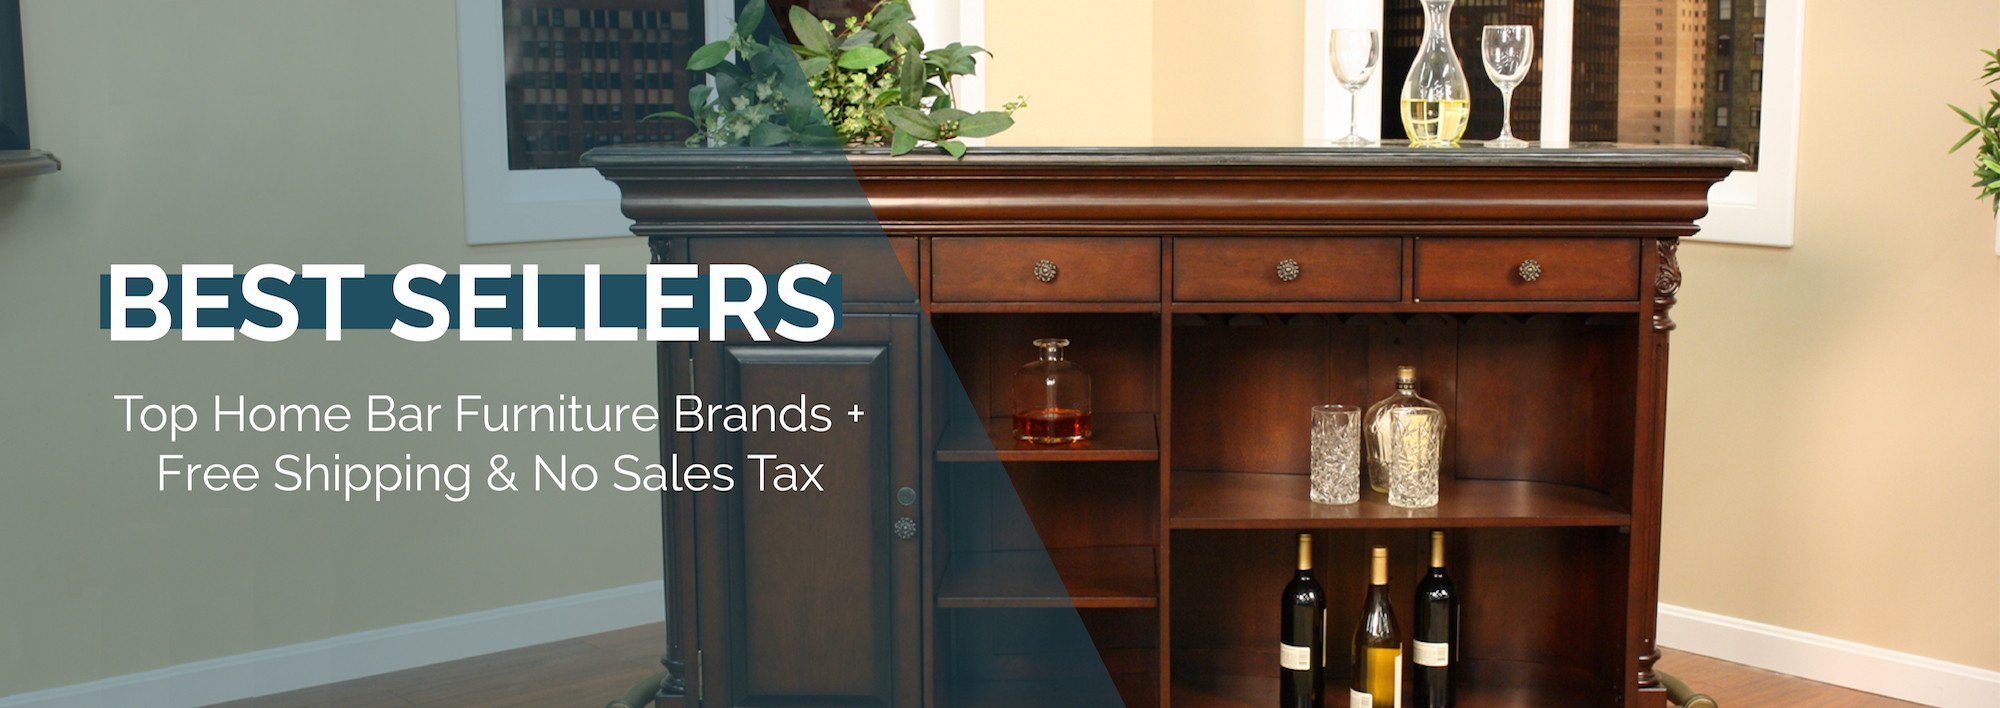 Traditional Home Bar Furniture. Home Bars USA   Buy Home Bar Furniture Online